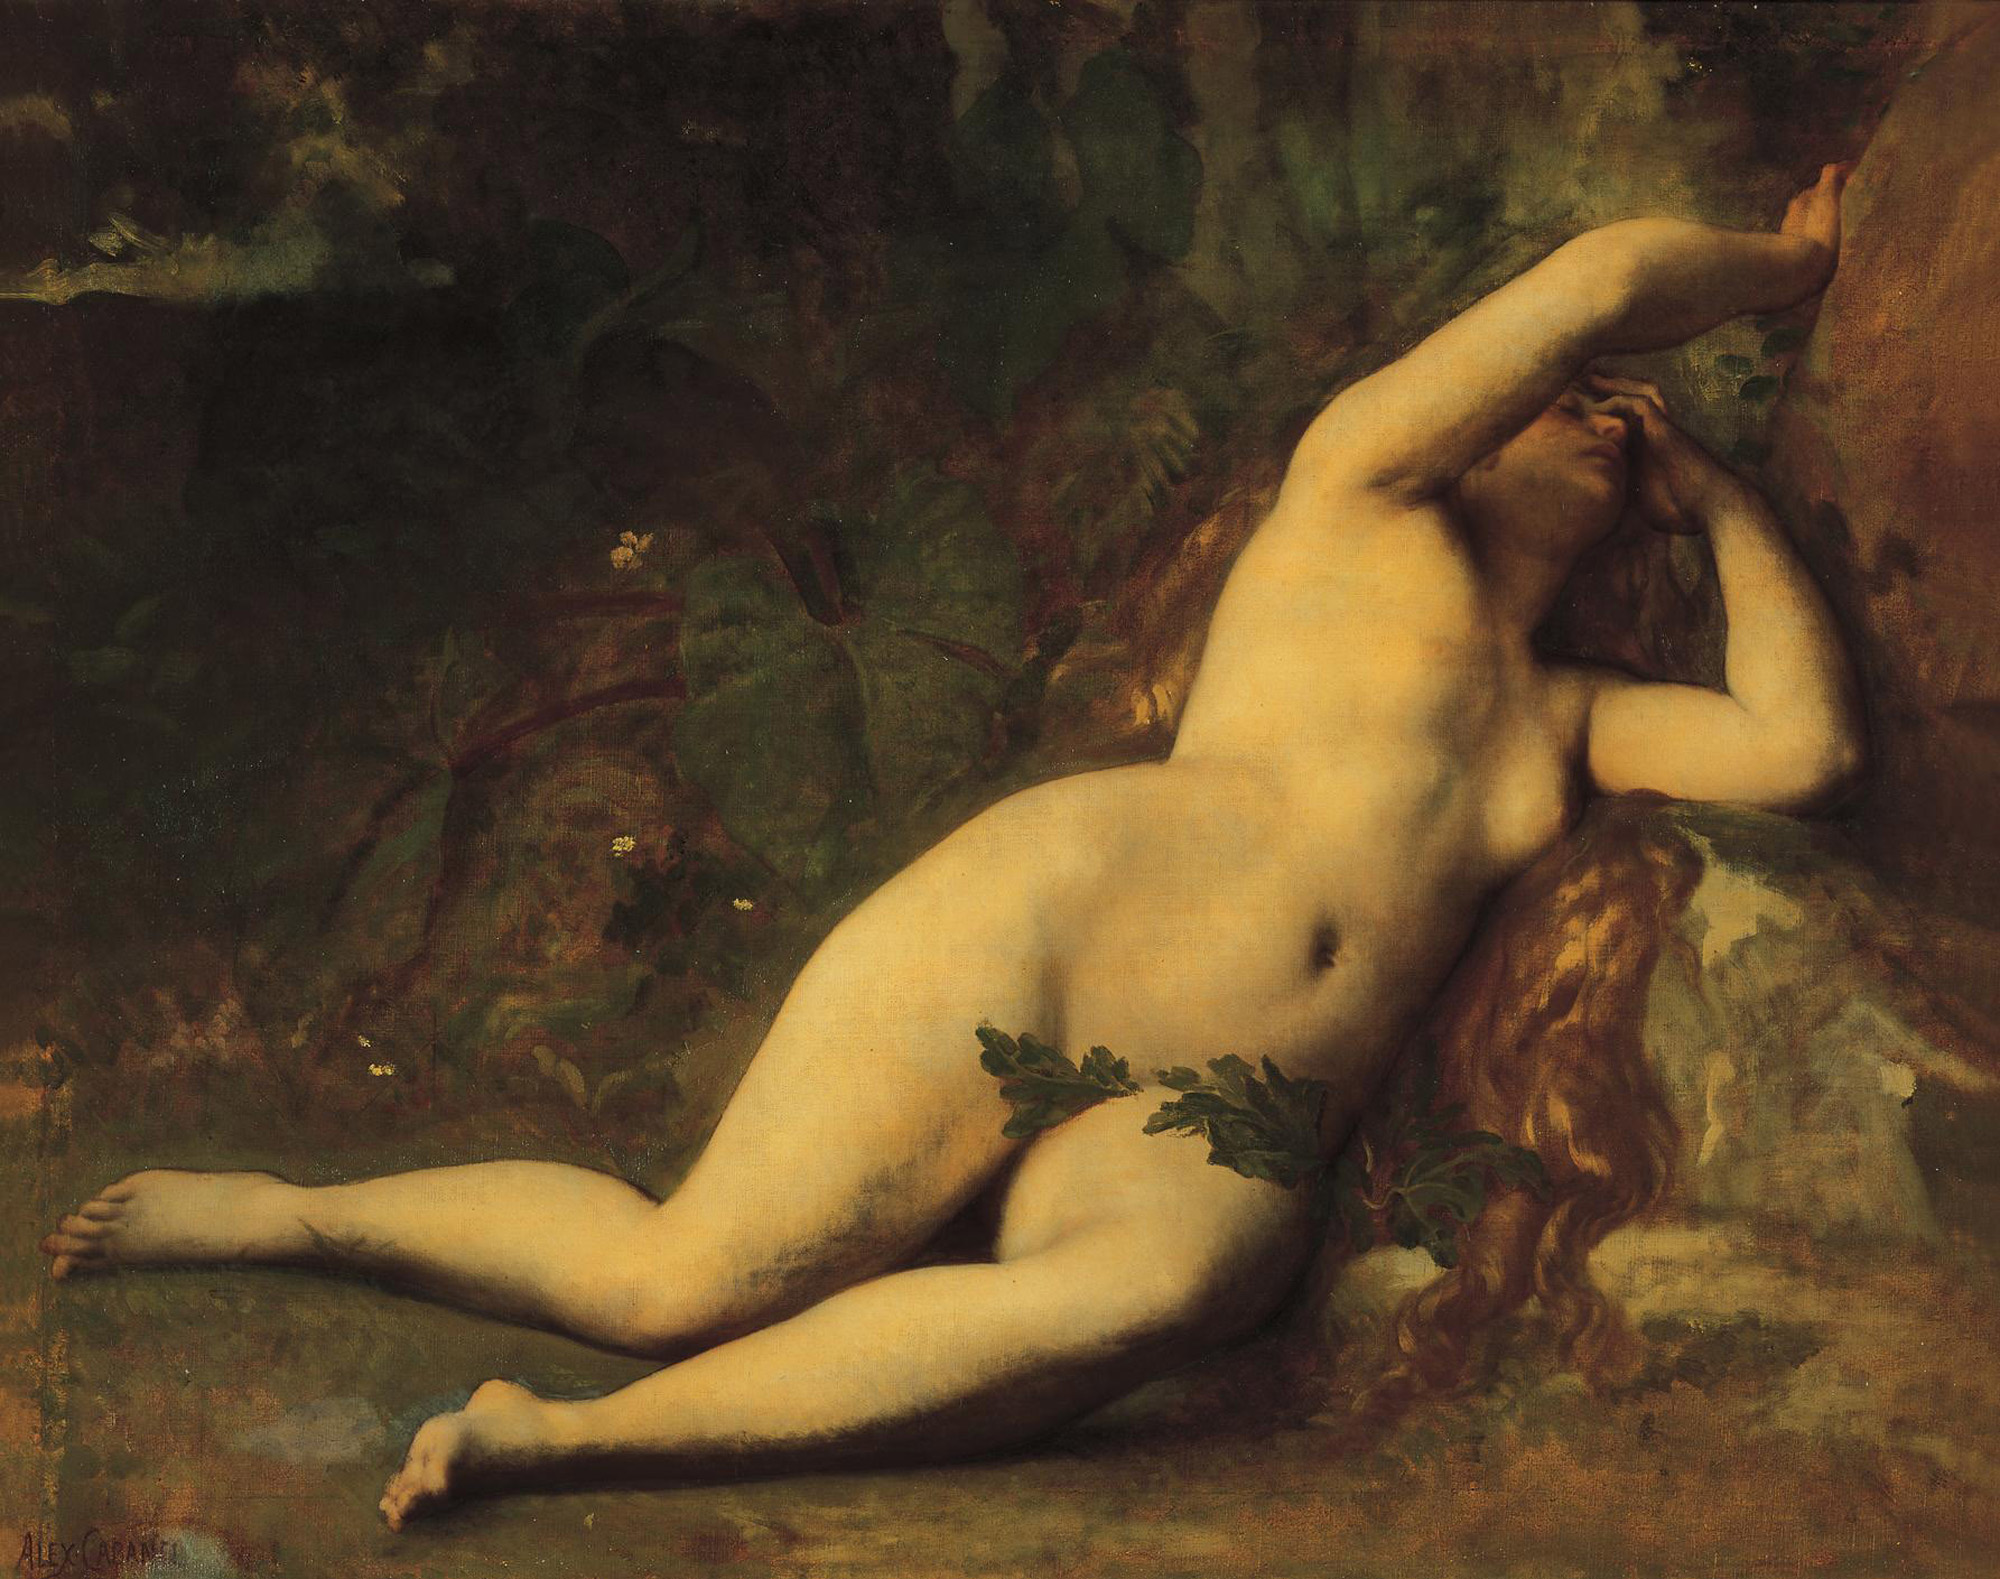 Alexandre Cabanel (1823-1889)  Eve After the Fall  Oil on canvas  29 1/2 x 37 3/4 inches (74.93 x 95.89 cm)  Private collection